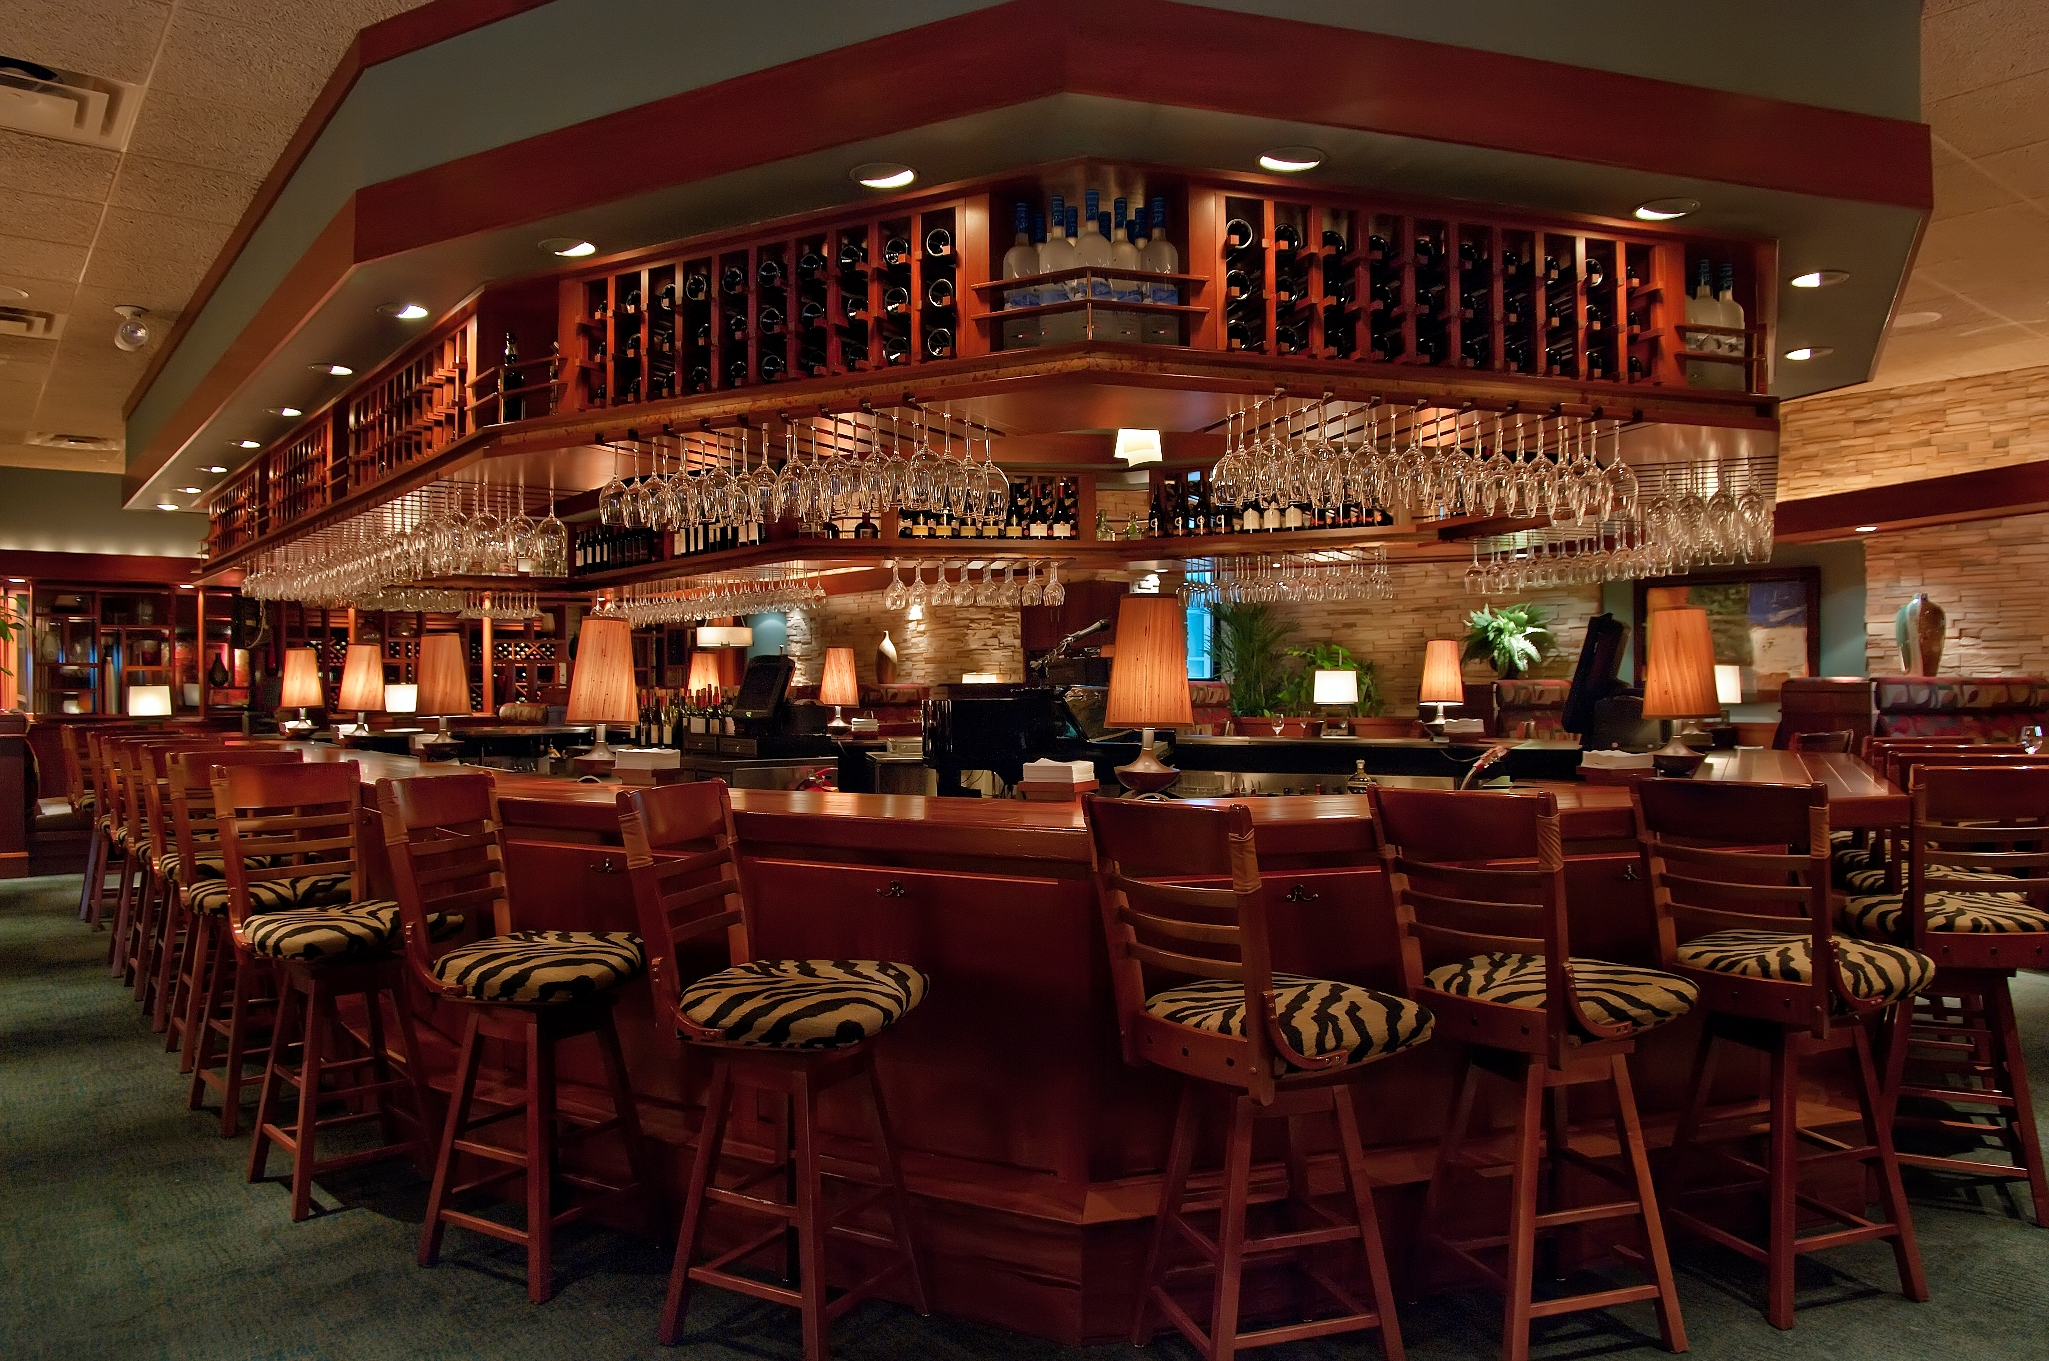 Image gallery seasons 52 schaumburg for Open table seasons 52 utc